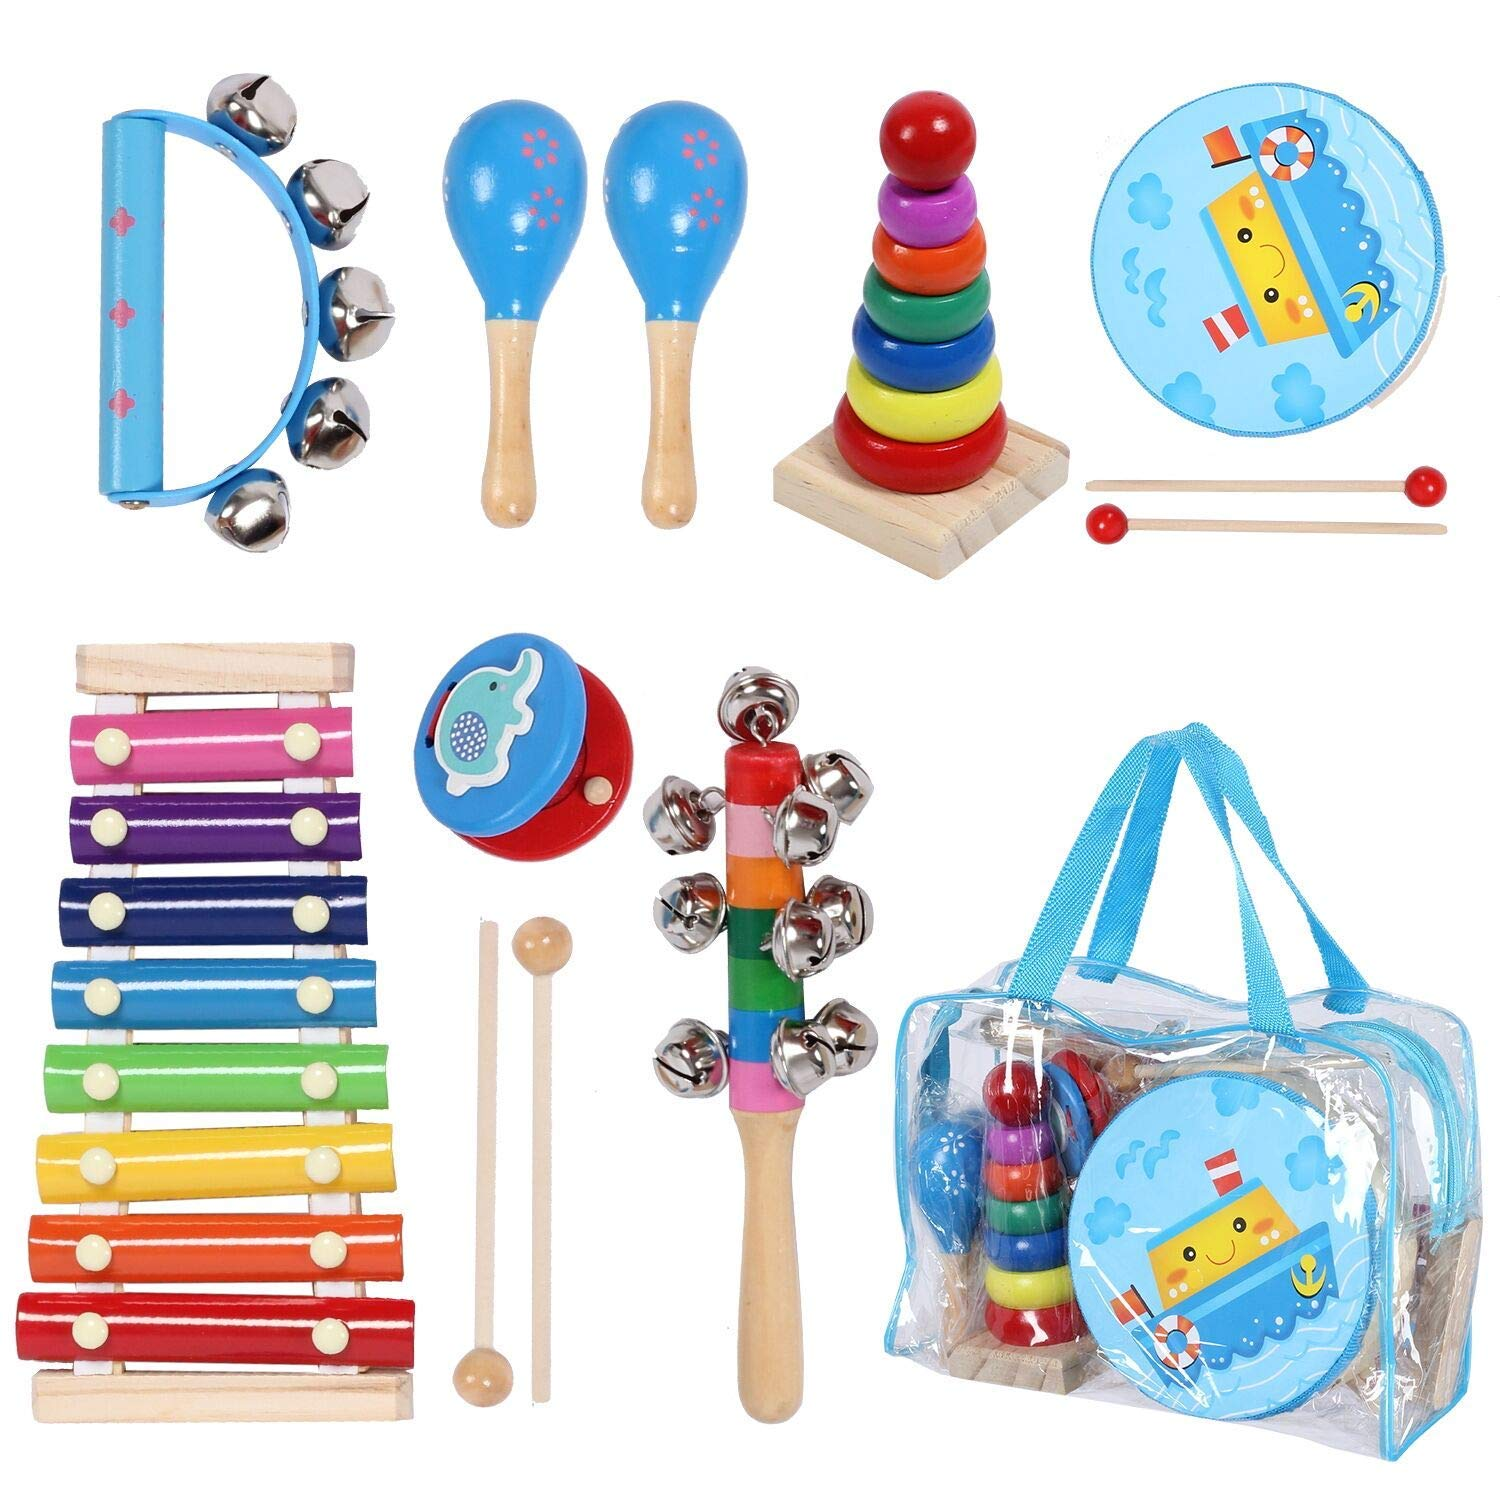 Kids Musical Instruments Sets, 12pcs Wooden Percussion Instruments Toys  Tambourine Xylophone for Kids Playing Preschool Education, Early Learning